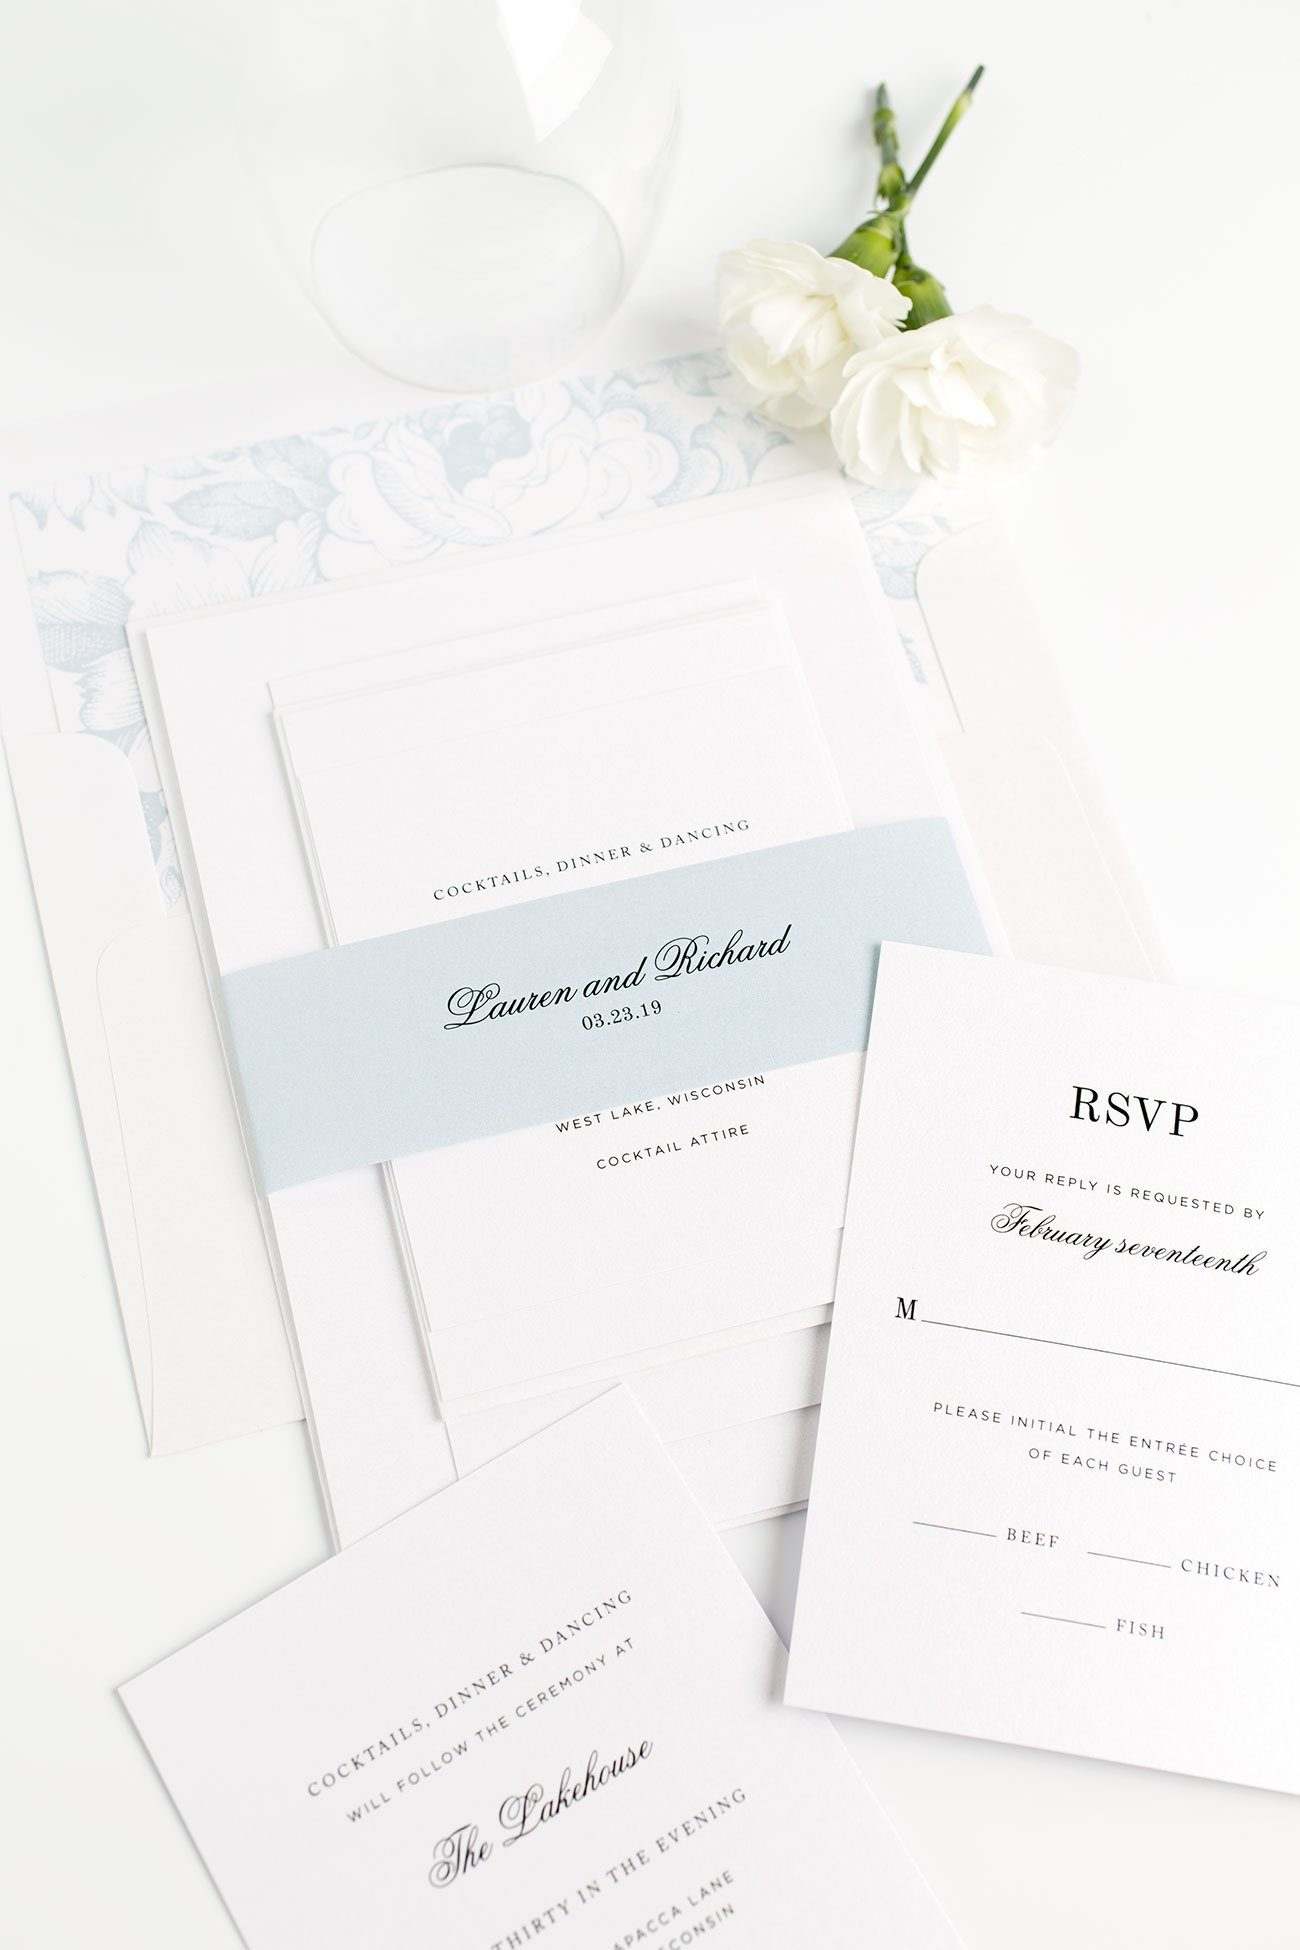 Classic Monogram Wedding Invitations in Ice Blue with a Floral Envelope Liner